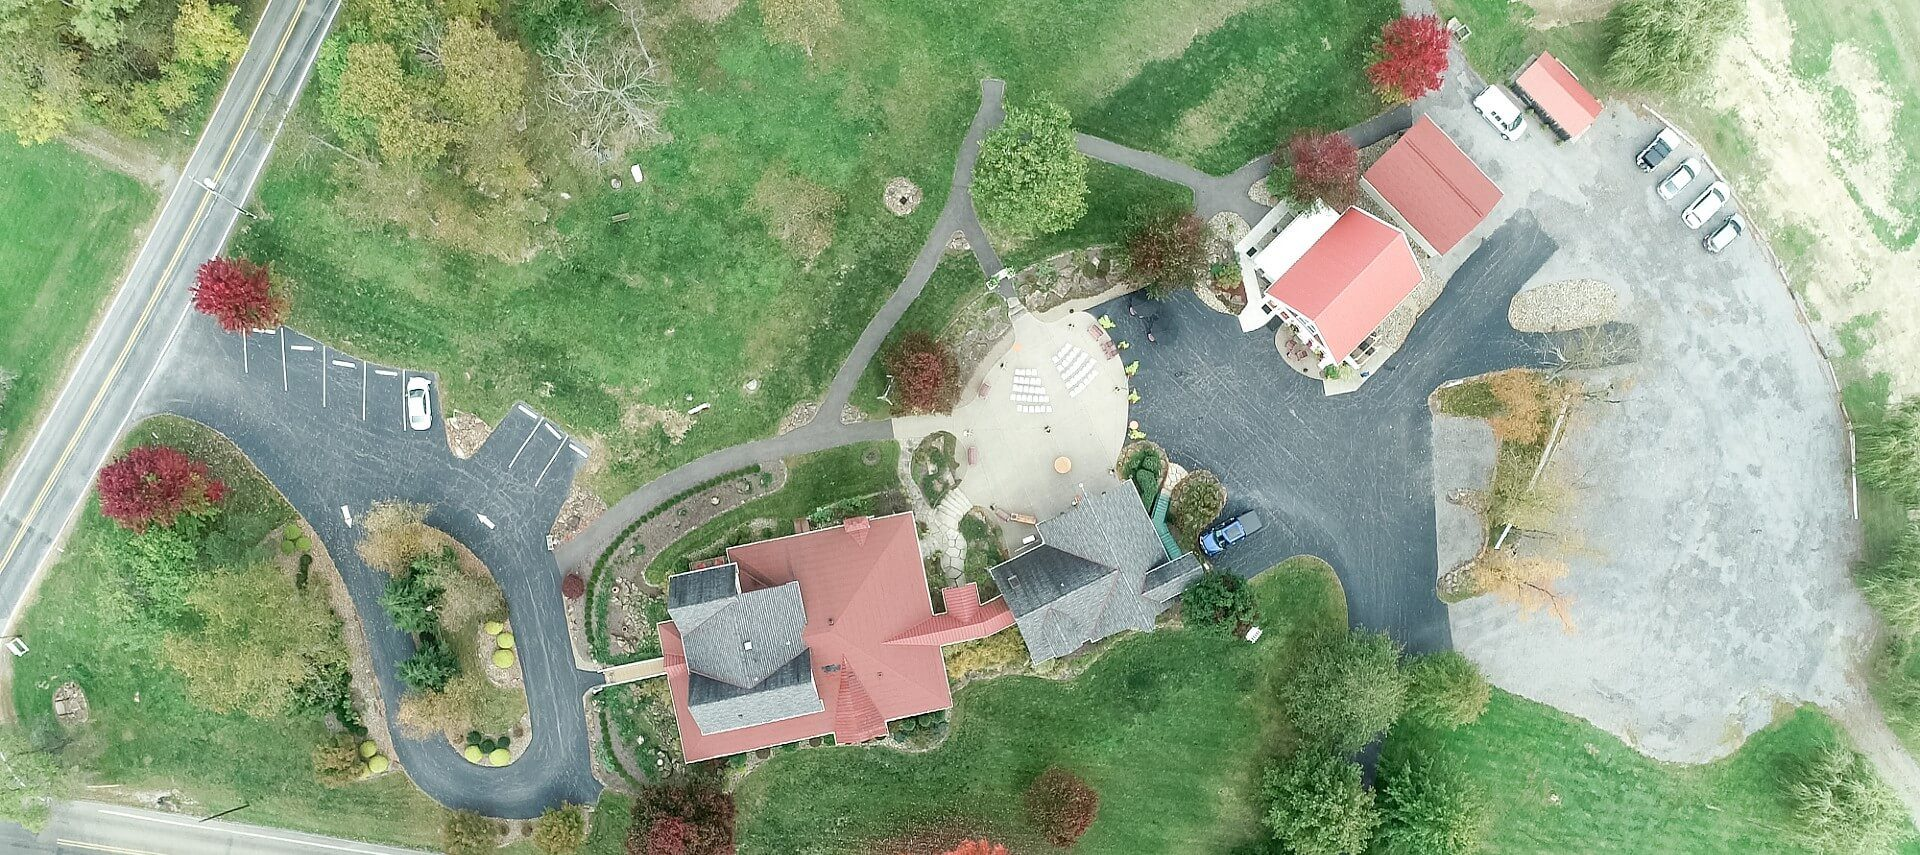 Aerial view of a home with multiple outbuildings, an expansive lawn and two parking lots